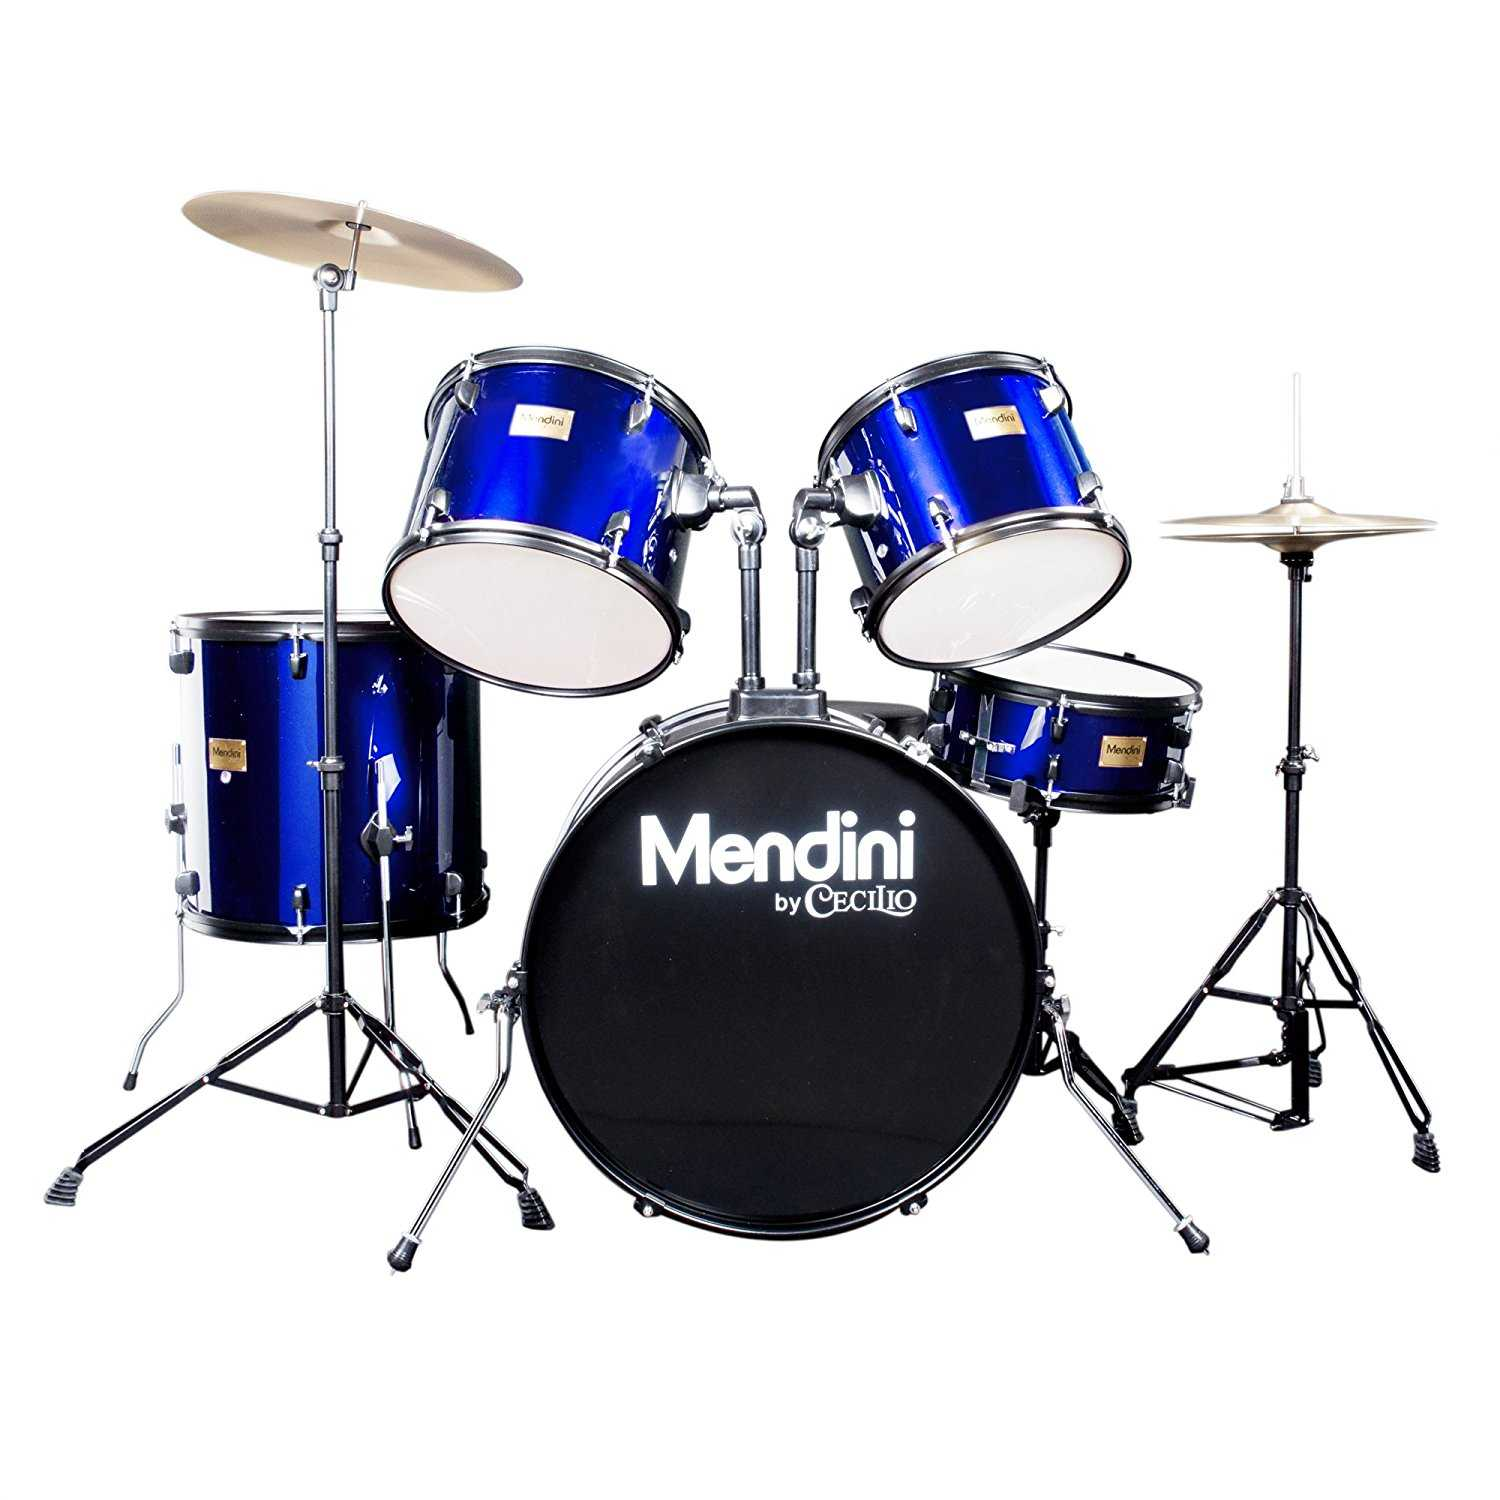 mendini by cecilio 5 piece adult drum set product review oia music. Black Bedroom Furniture Sets. Home Design Ideas